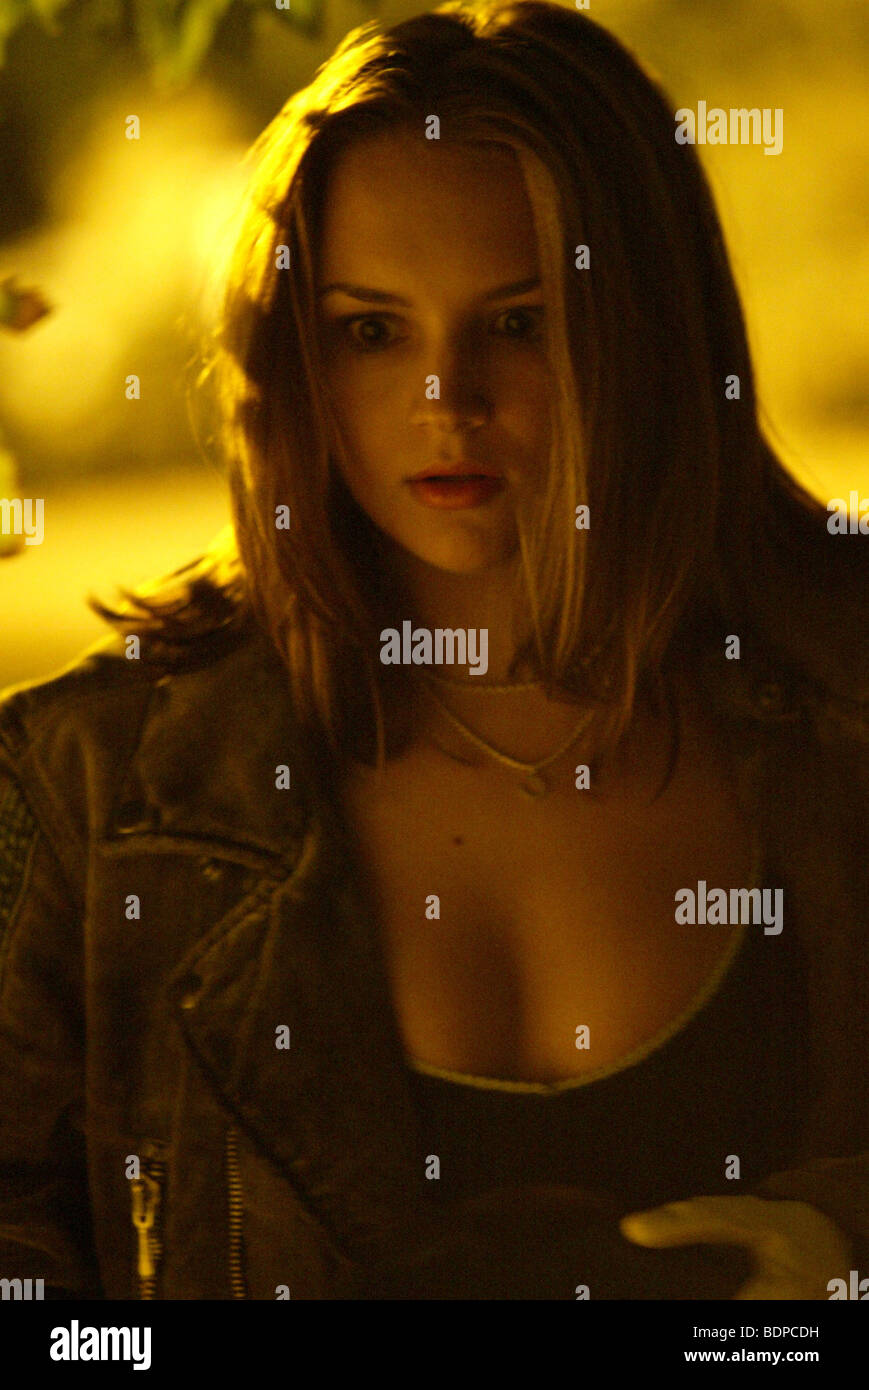 11.14 Year : 2004 Director : Greg Marcks Rachael Leigh Cook - Stock Image